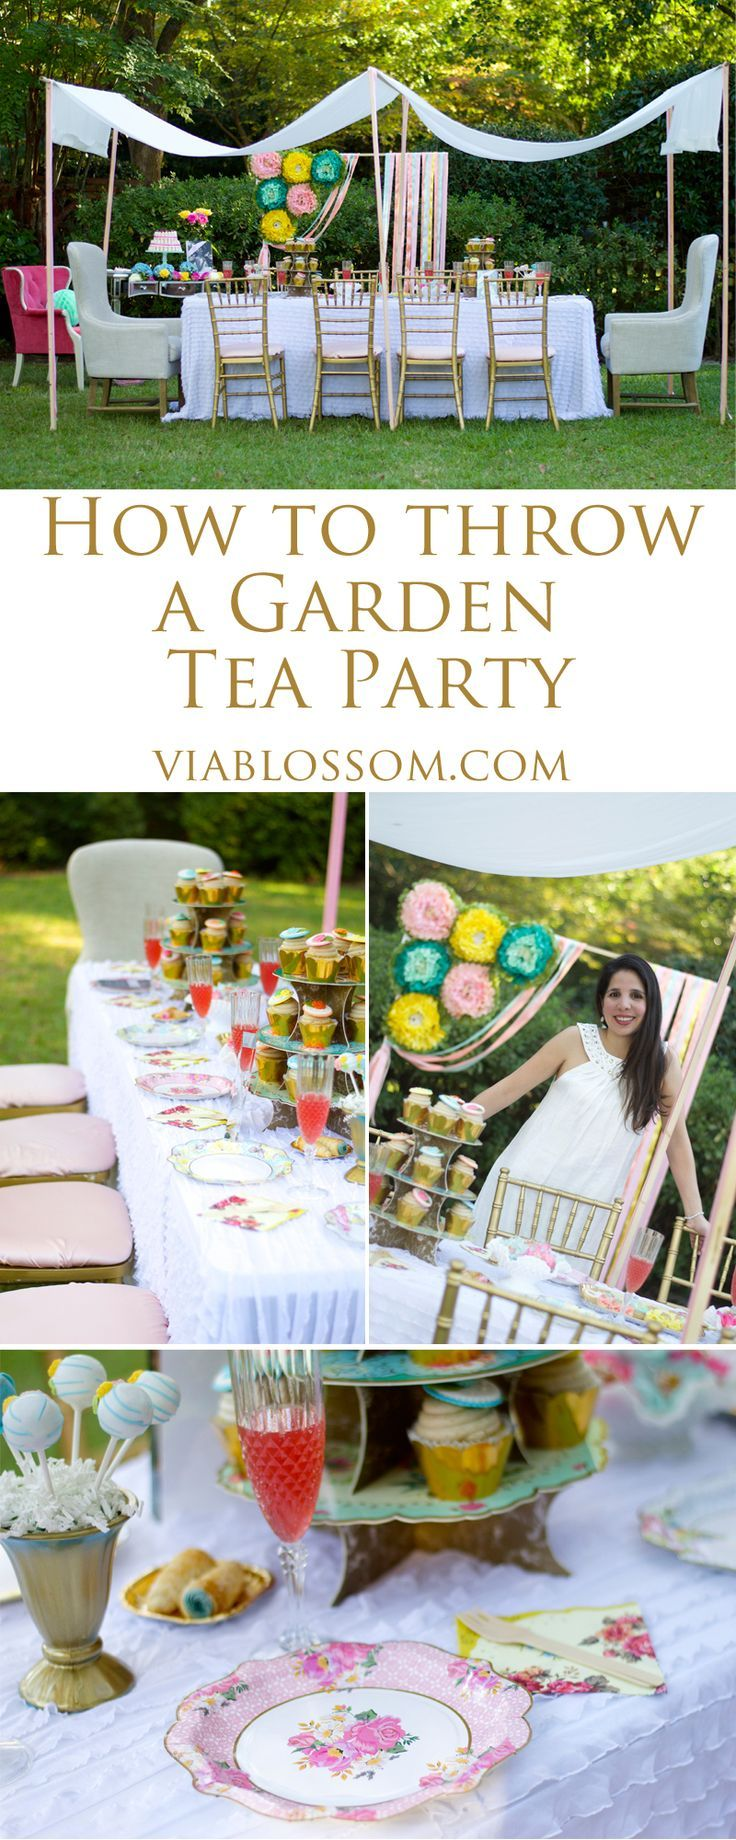 Garden Tea Party Baby Shower Ideas girlie modern tea party in the park Tea Party Ideas For A Fabulous Baby Shower If Youre Planning A Baby Shower Weve Got You Covered